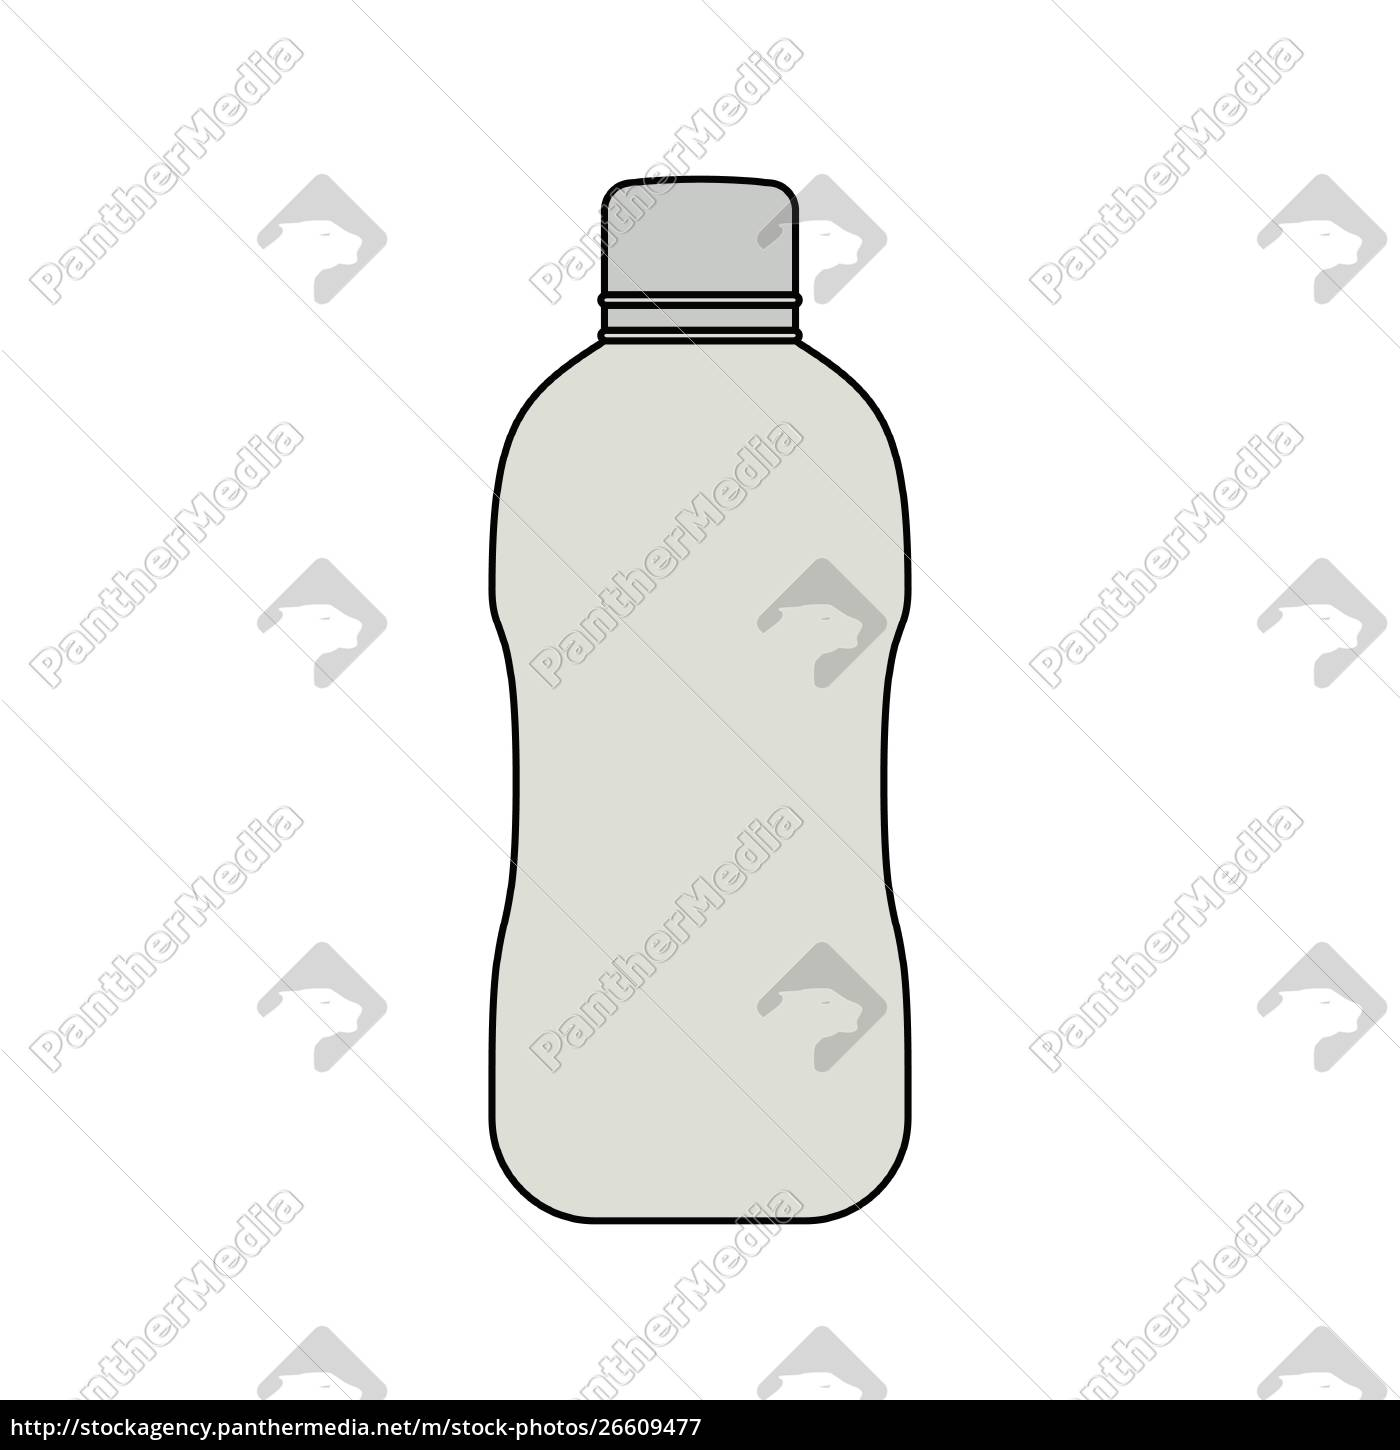 flat, design, icon, of, water, bottle - 26609477